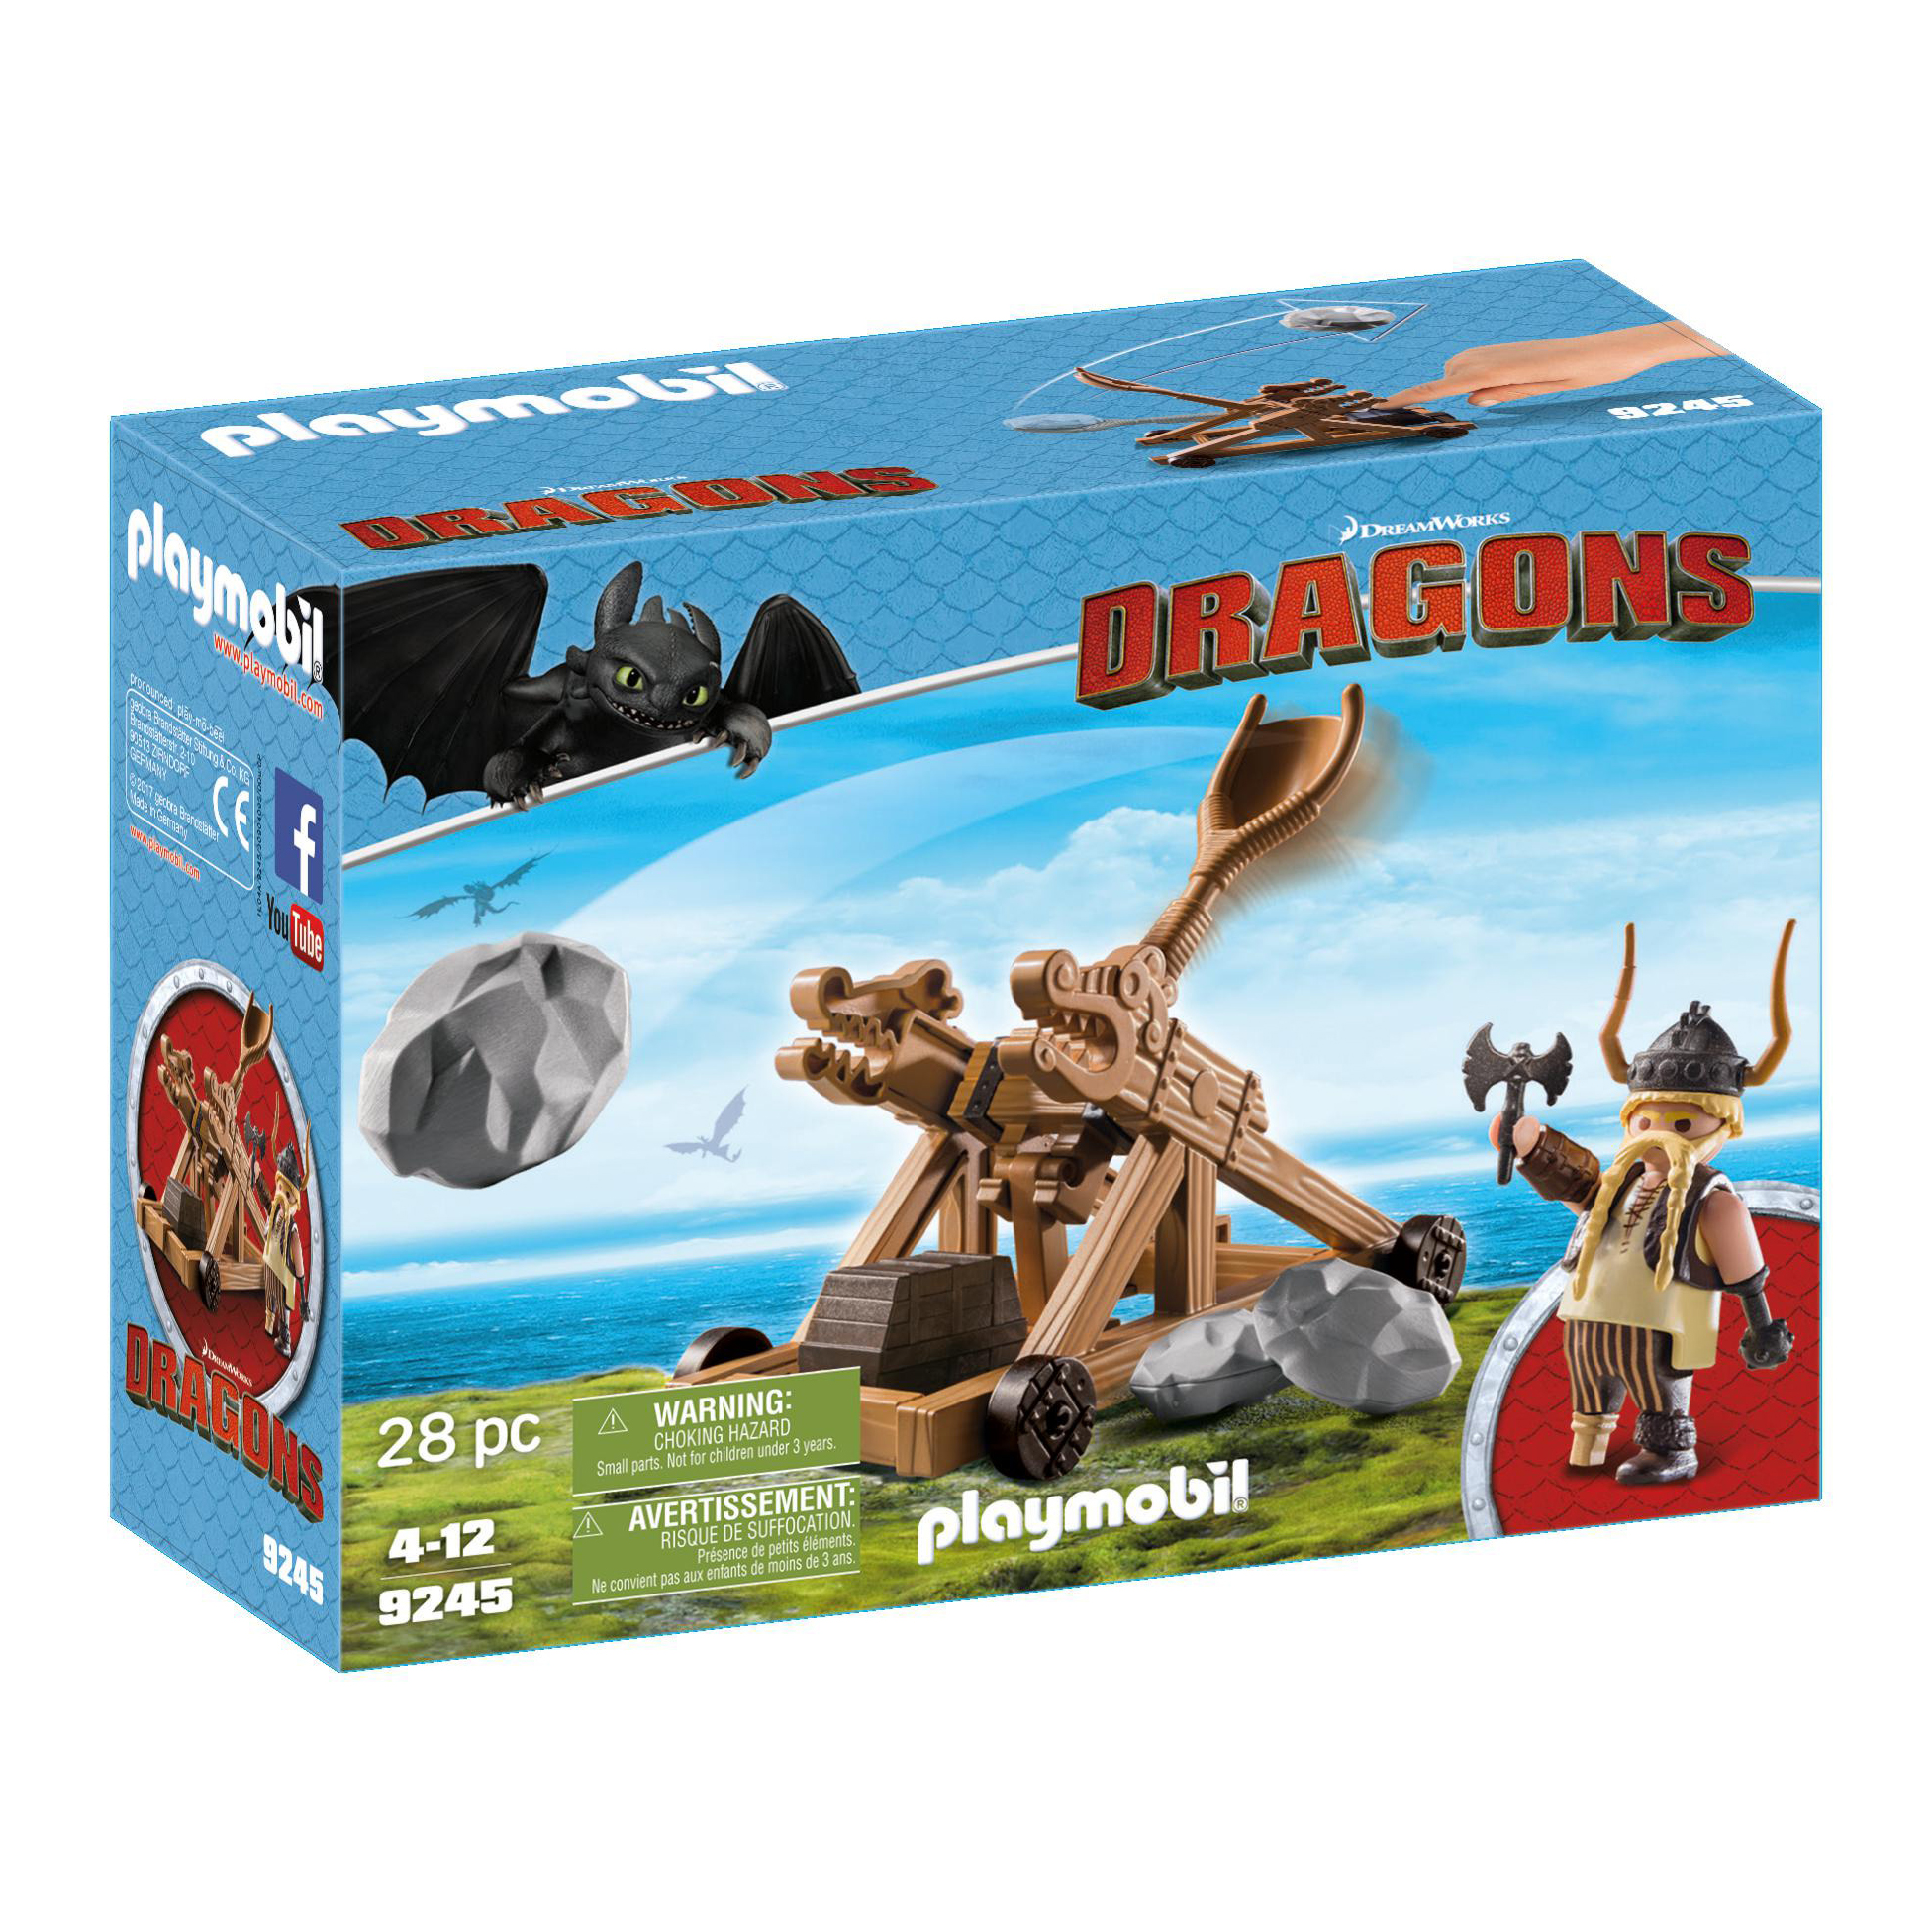 Playmobil Dreamworks Dragons Gobber 9245